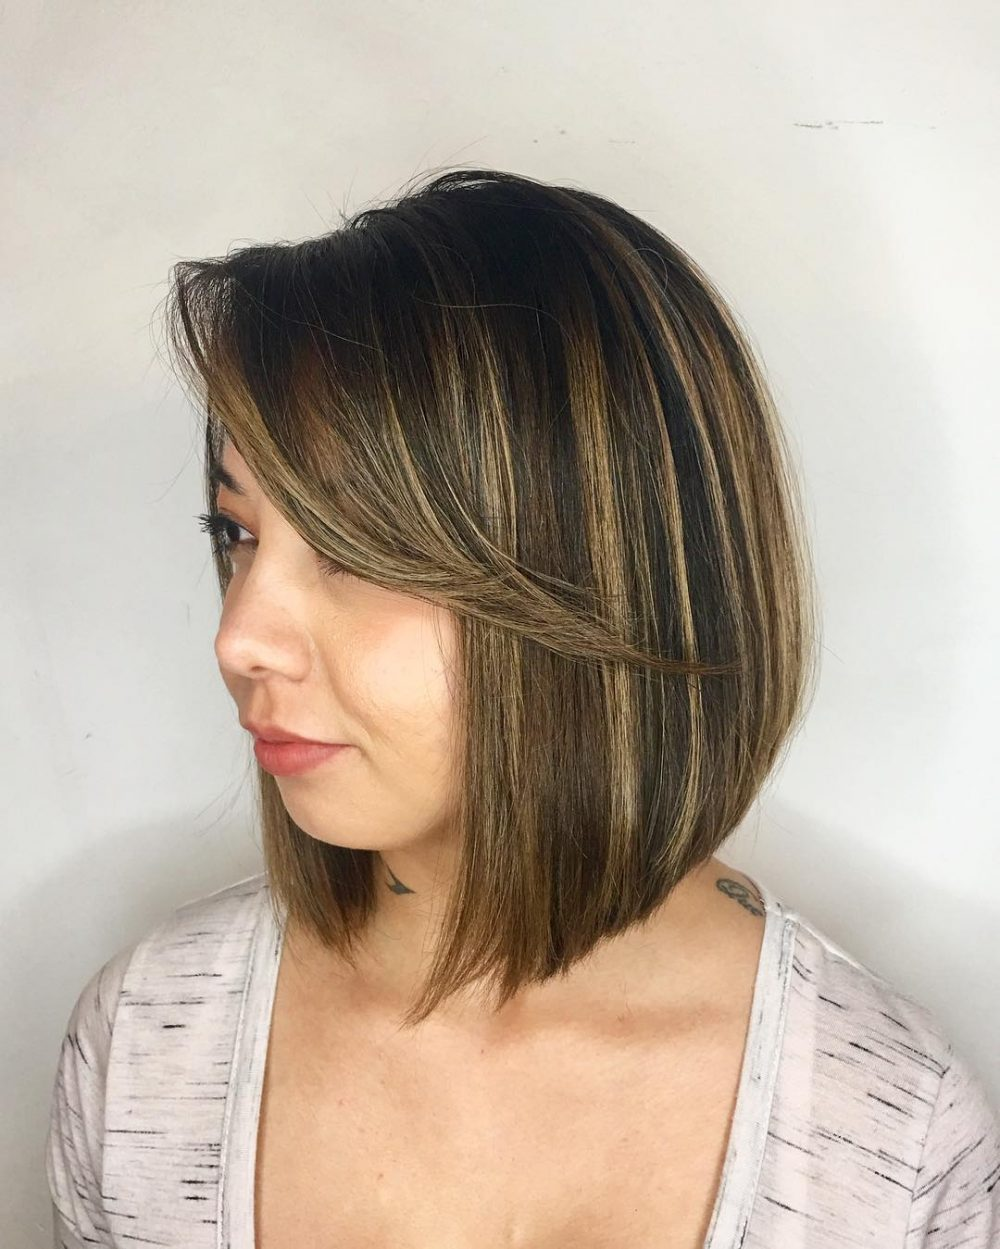 28 Most Flattering Bob Haircuts for Round Faces